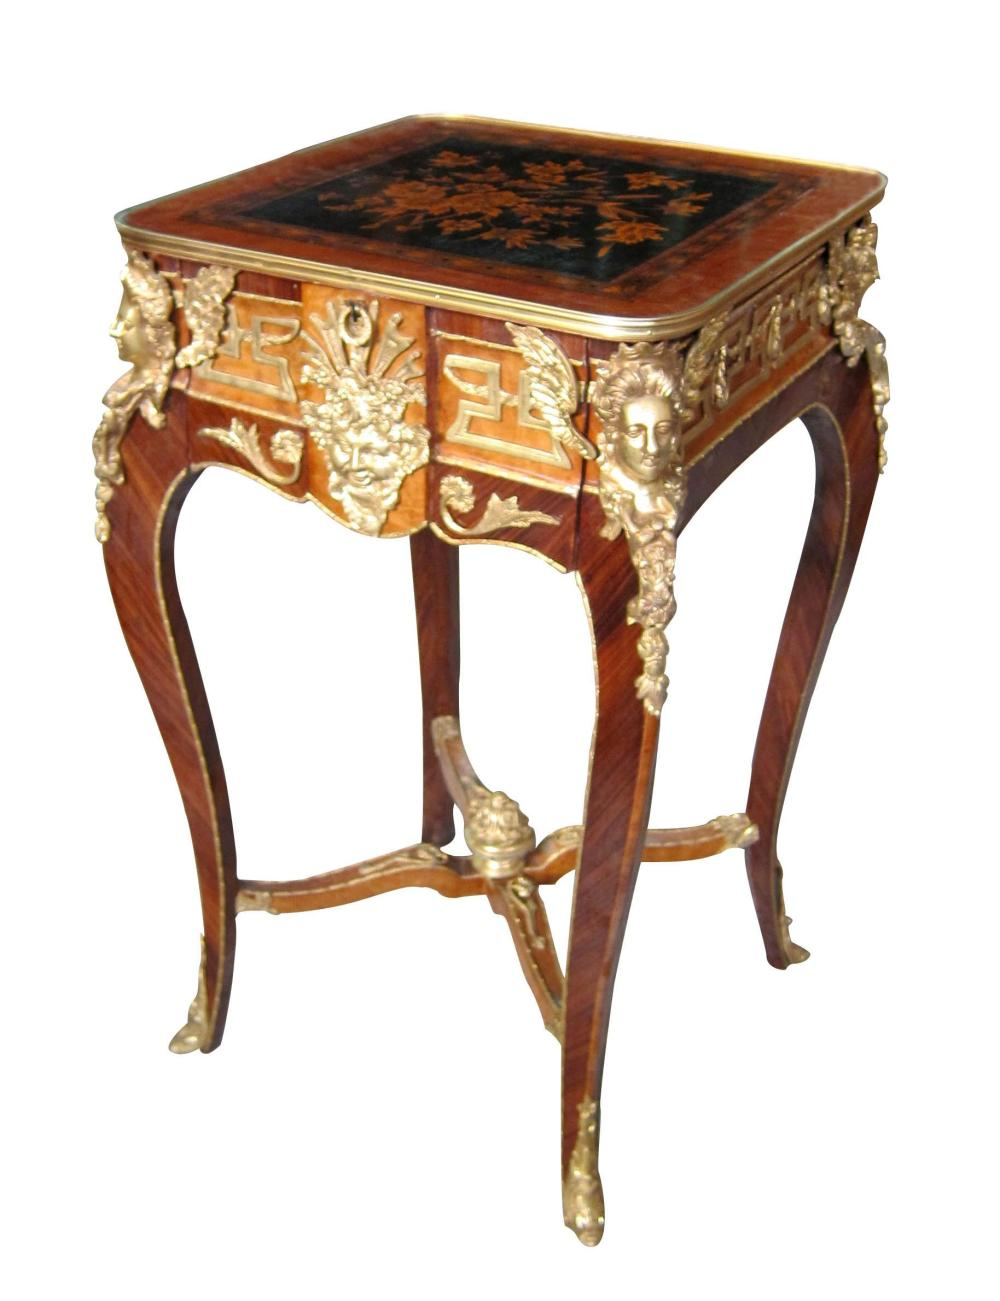 Louis XV-style side table